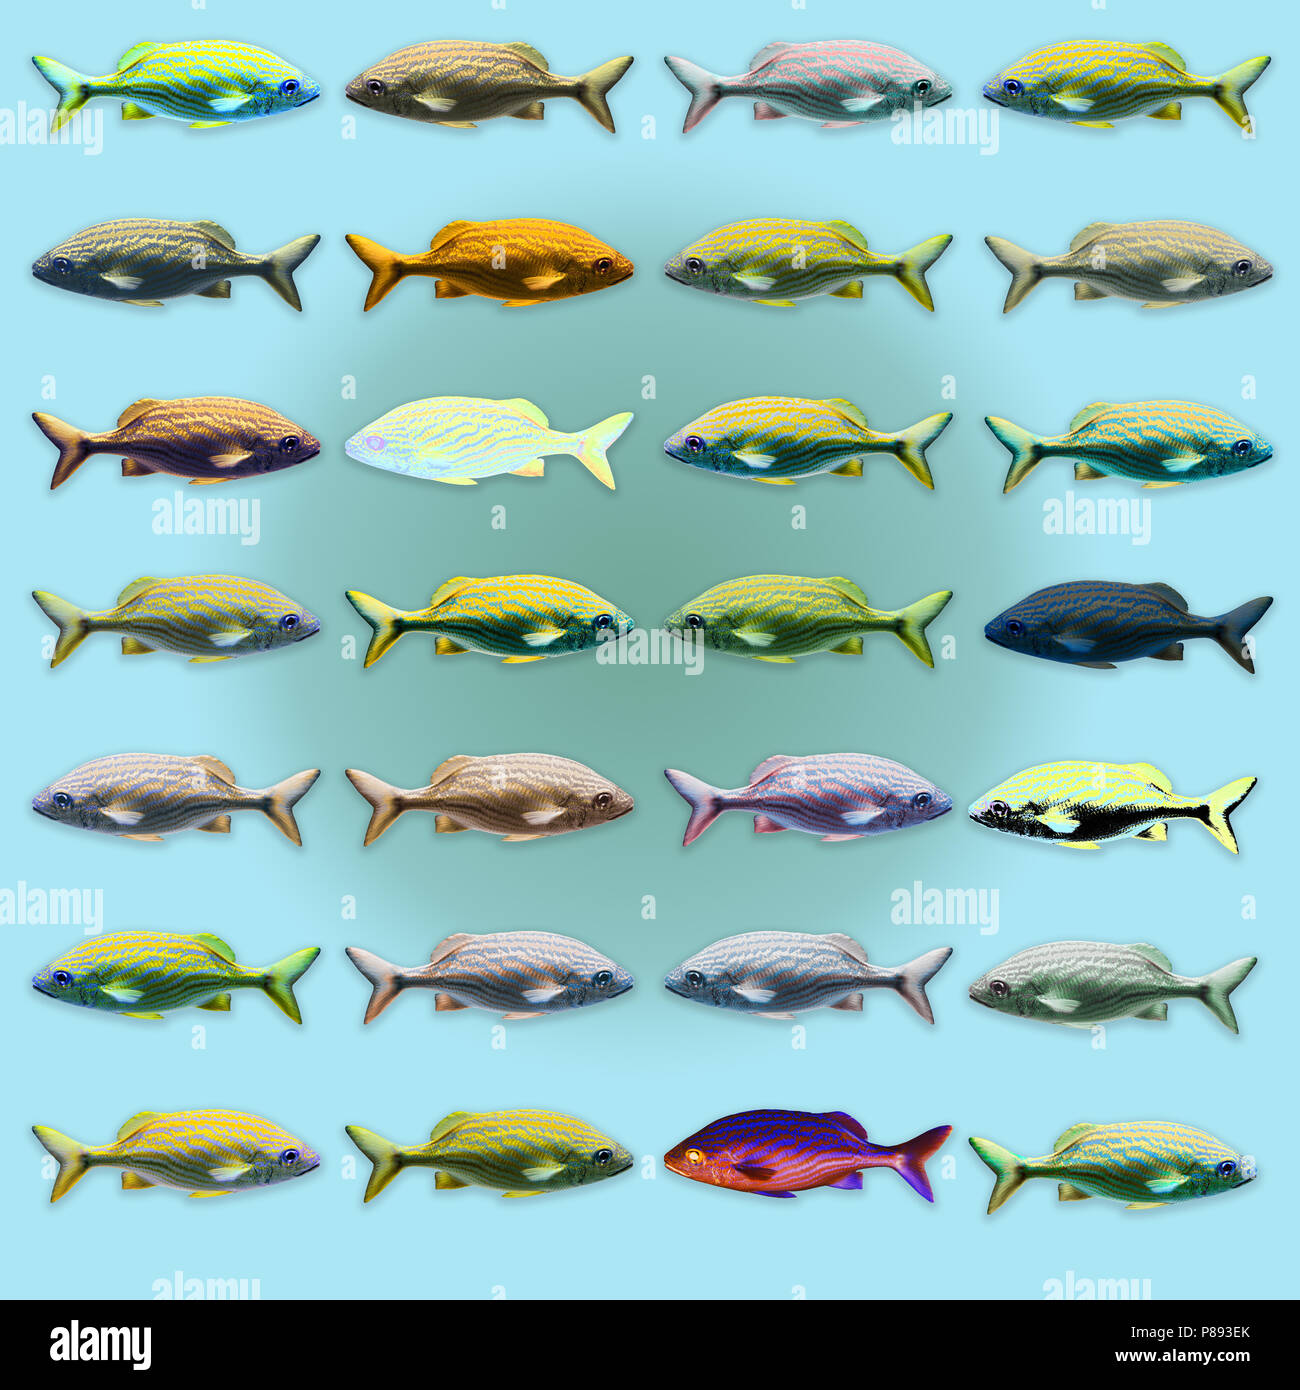 Digitally enhanced image of 28 color variations of a sea fish - Stock Image